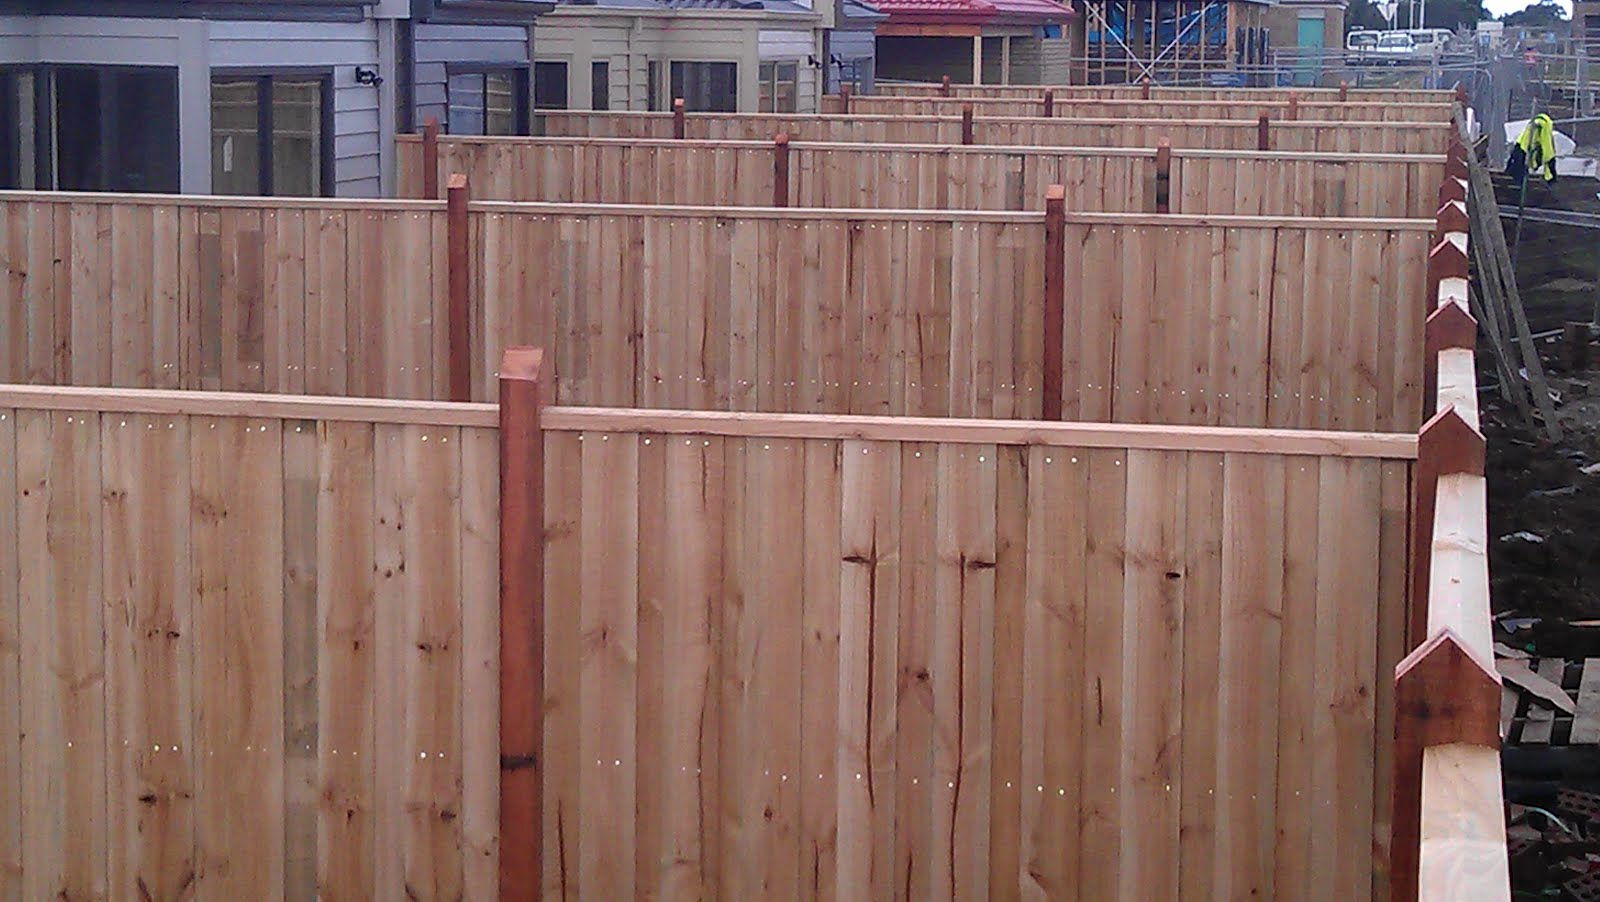 Ironman Fencing Timber Fence With Exposed Posts